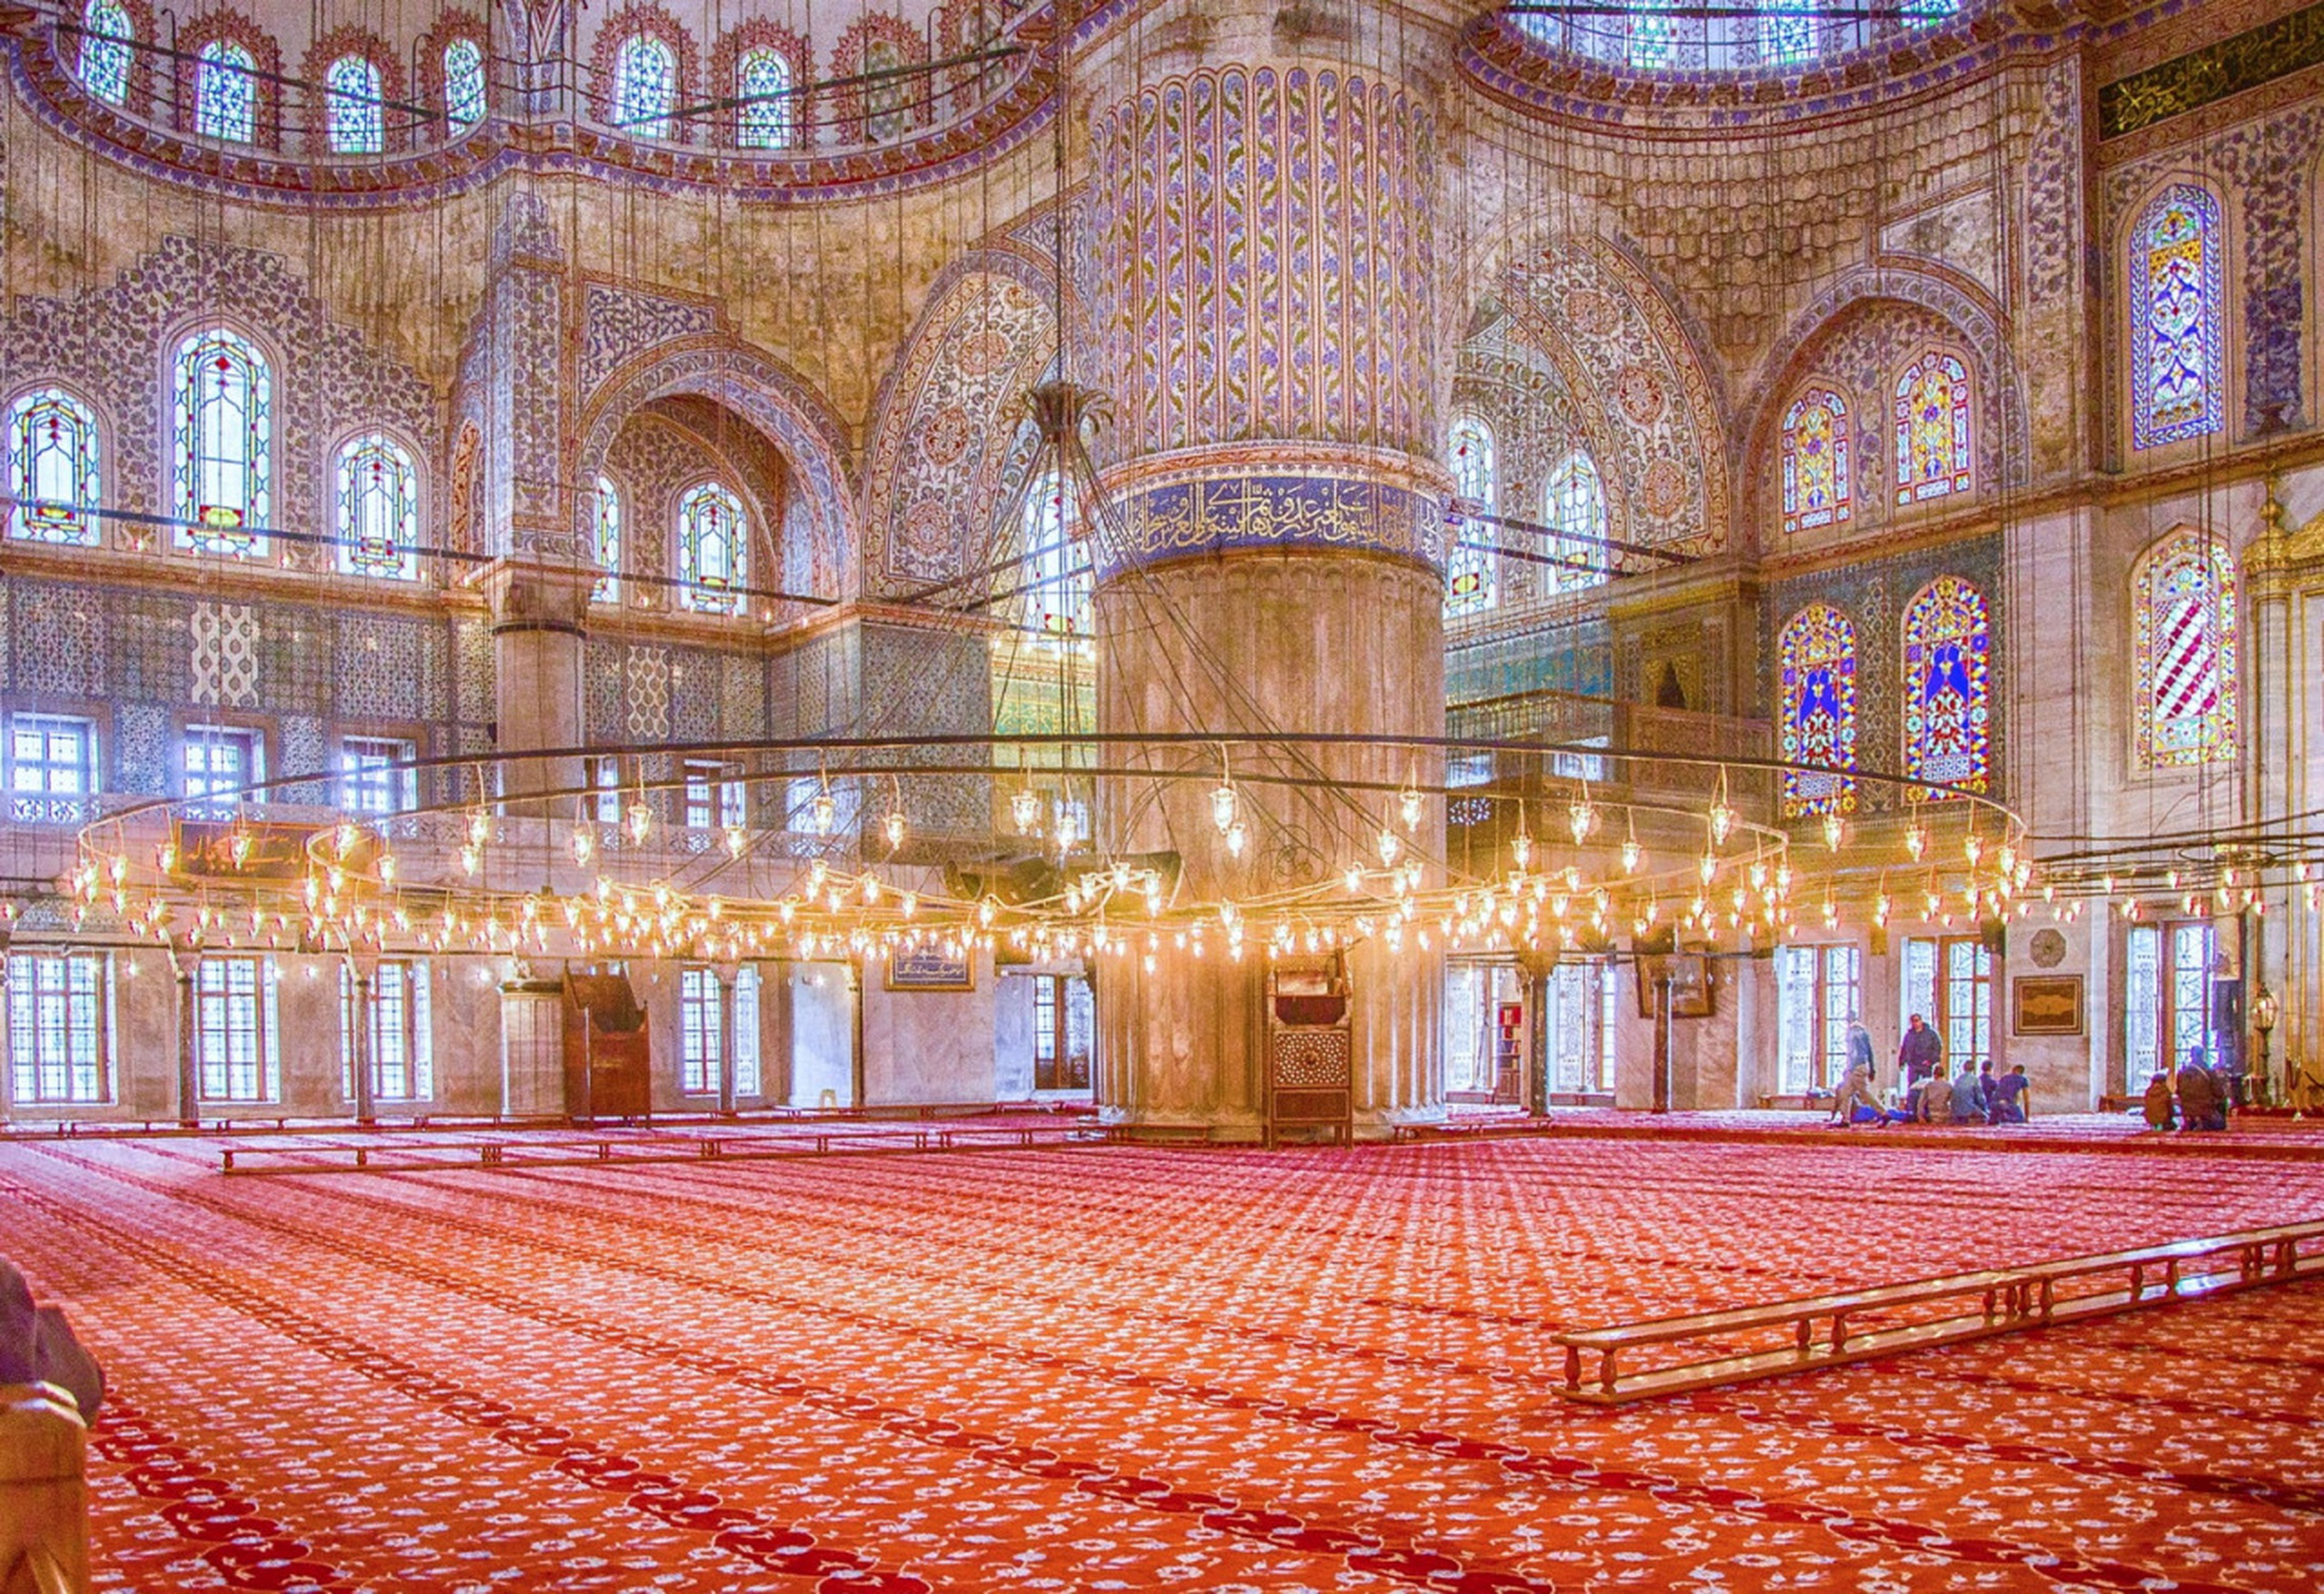 illuminated, group of objects, place of worship, red, carpet, repetition